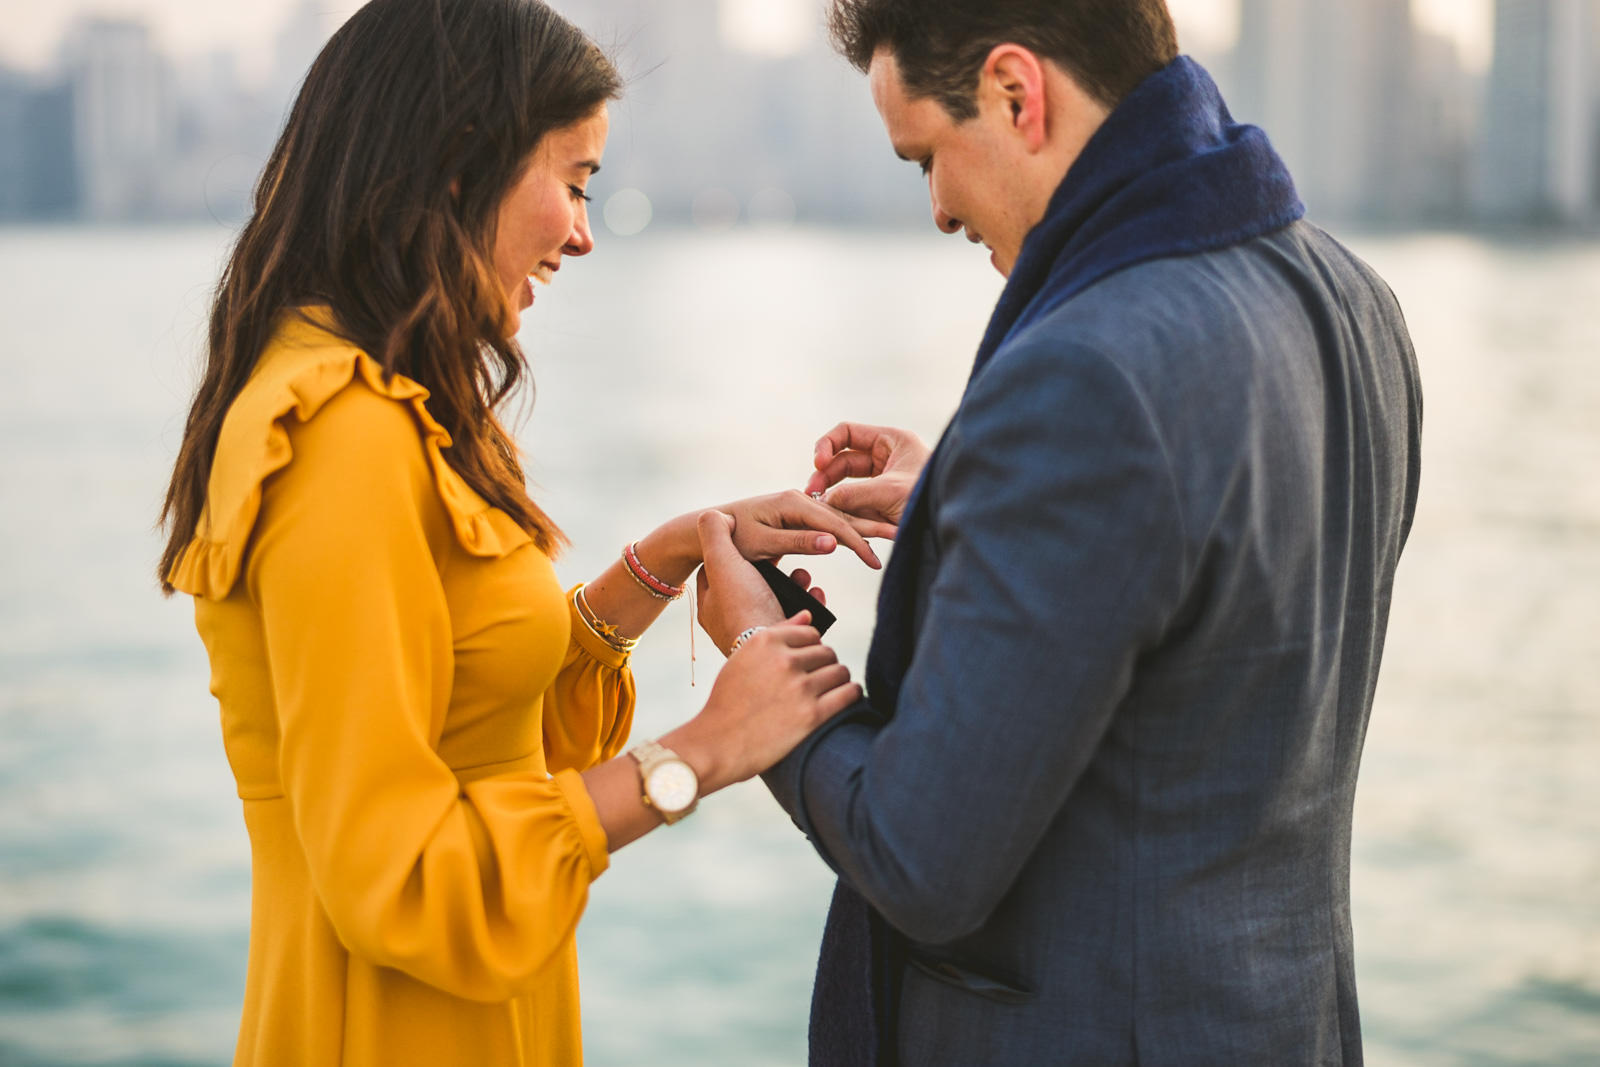 08 putting the ring on in chicago - Geraldine + Jose // Proposing in Chicago